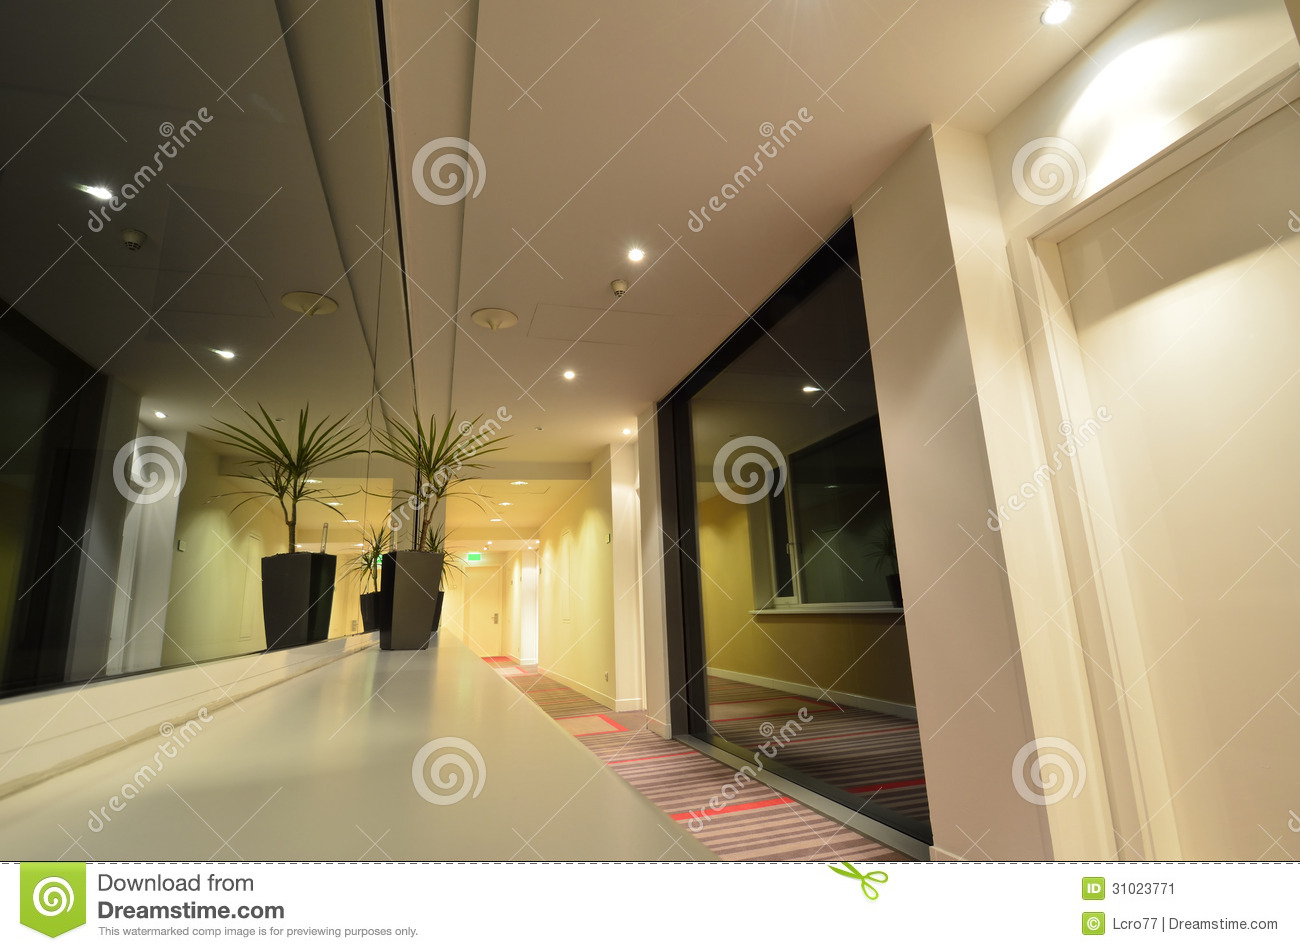 Luxury Hotel Interior Design Stock Image